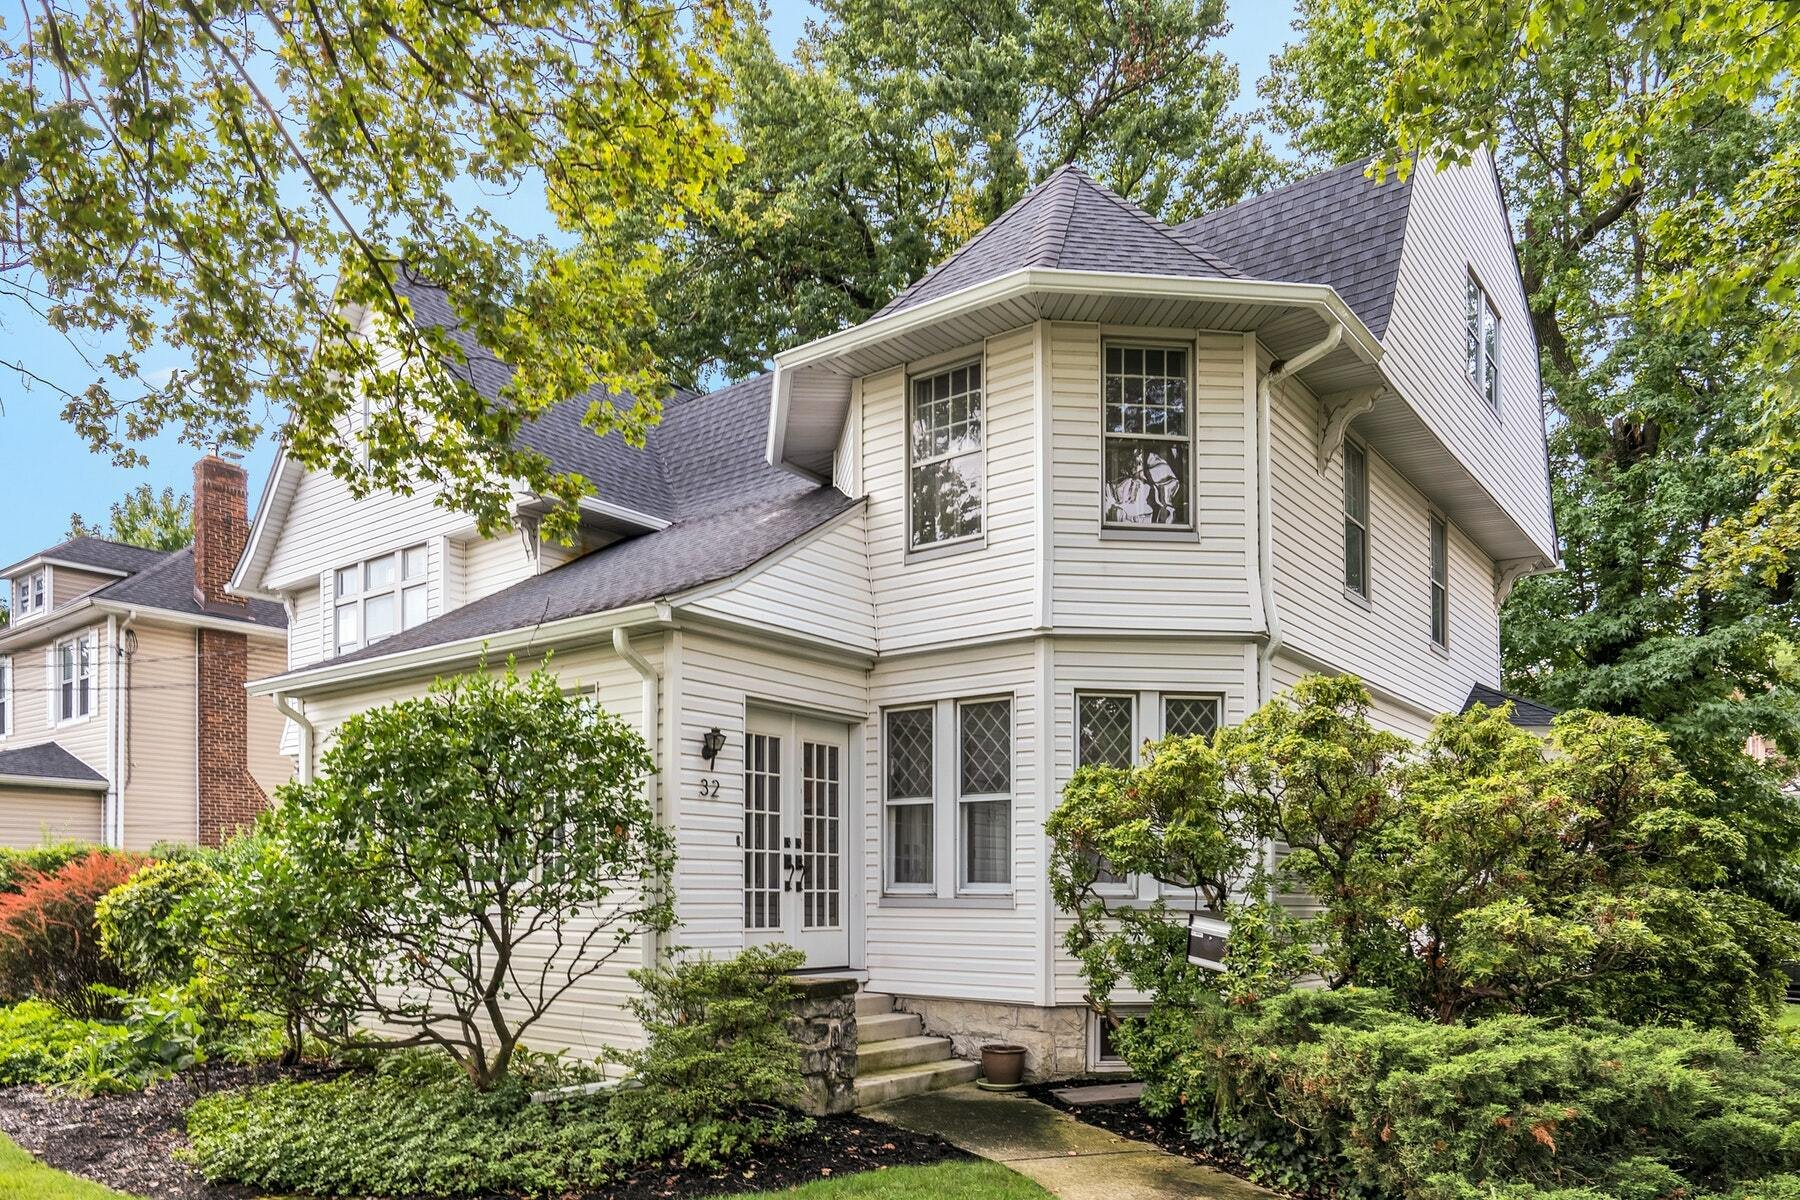 House in Cliffside Park, New Jersey, United States 1